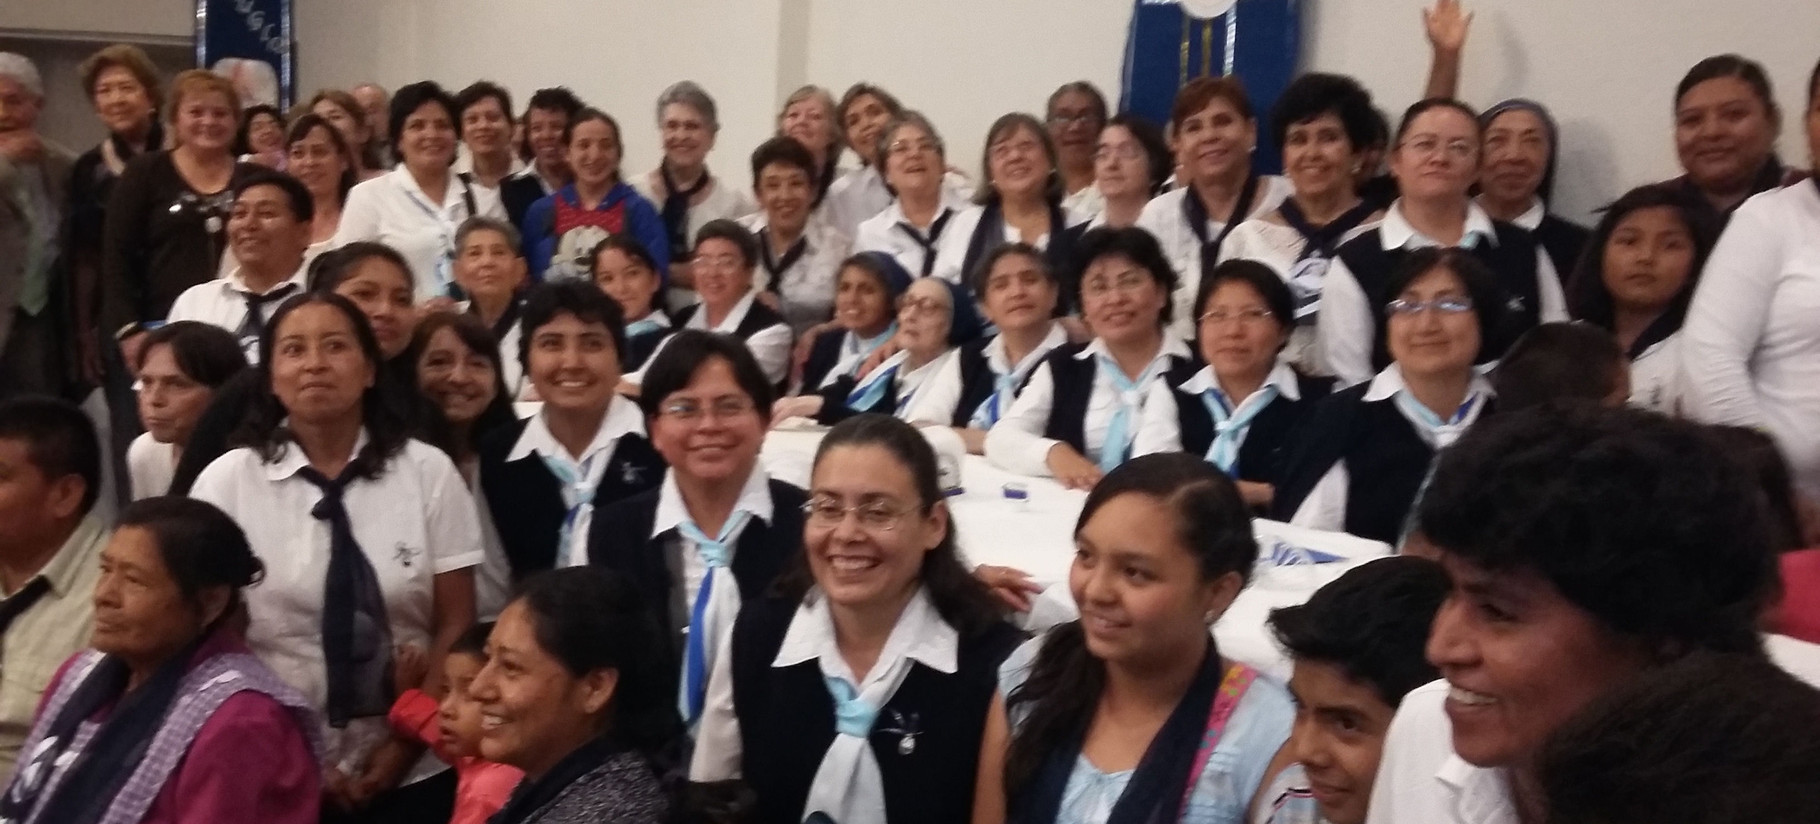 Celebration in Mexico for Ste Jeanne Emilie